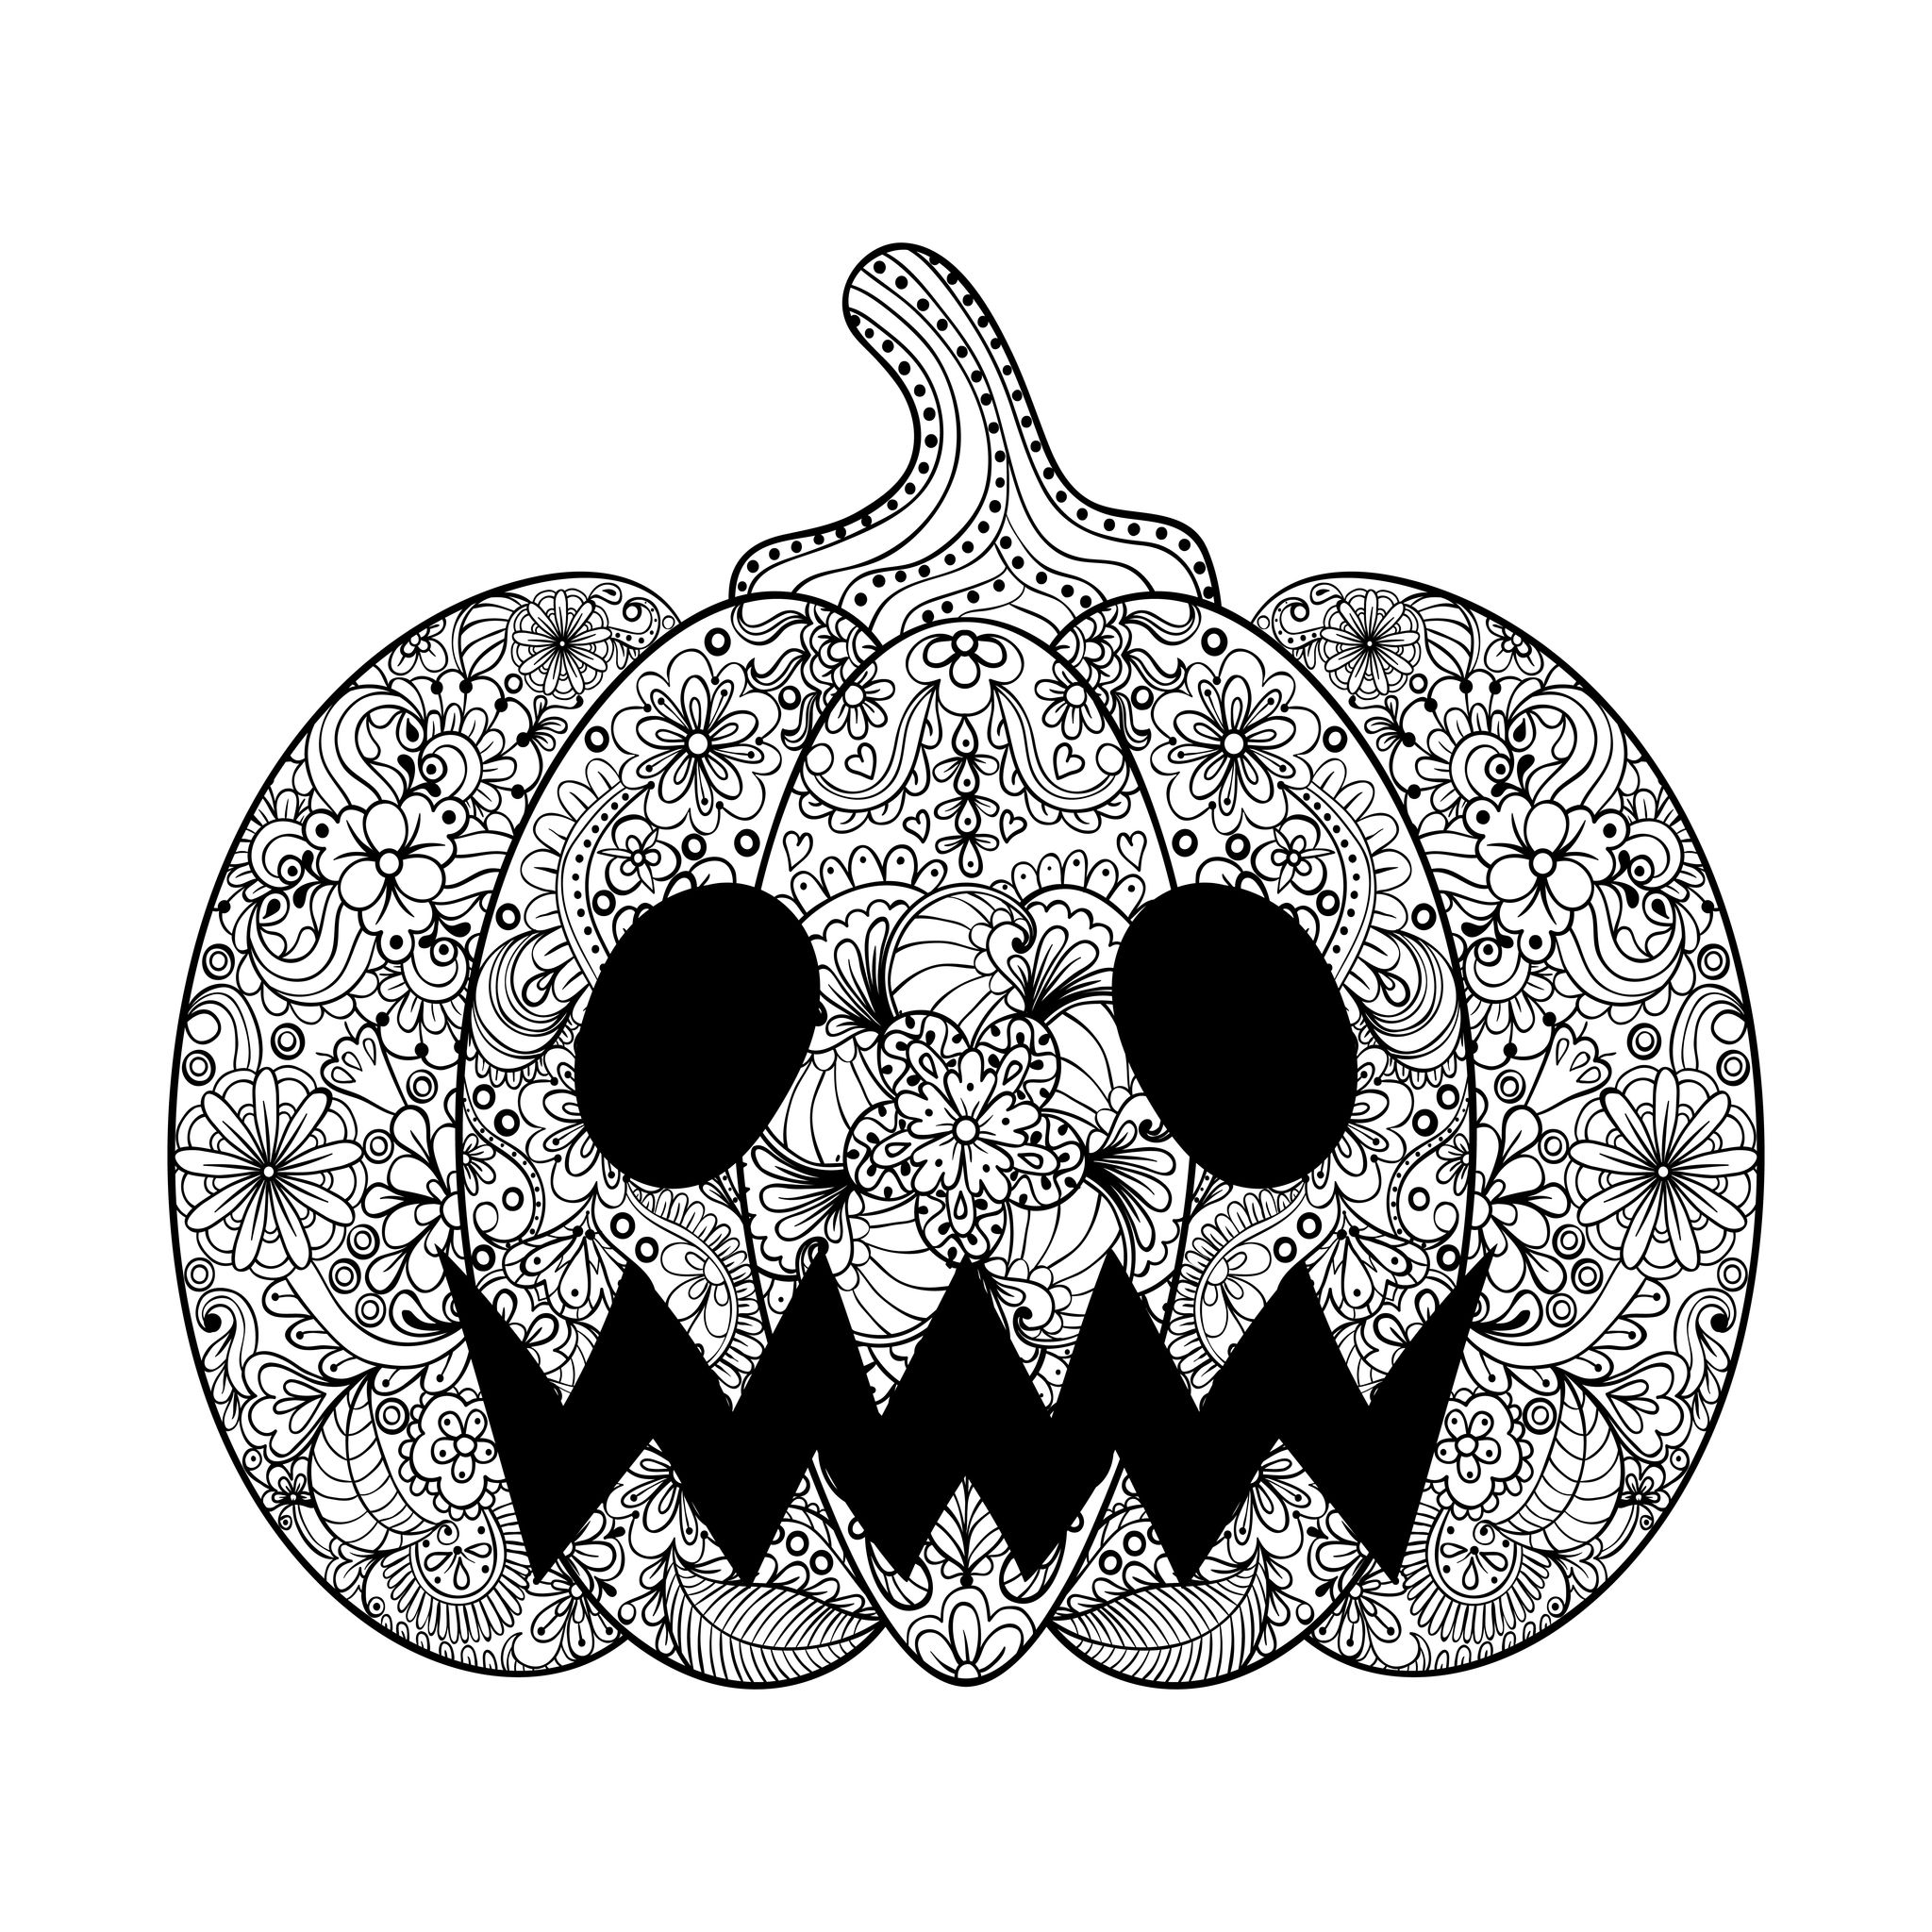 Halloween scary pumpkin halloween adult coloring pages for Pumpkin coloring pages for adults